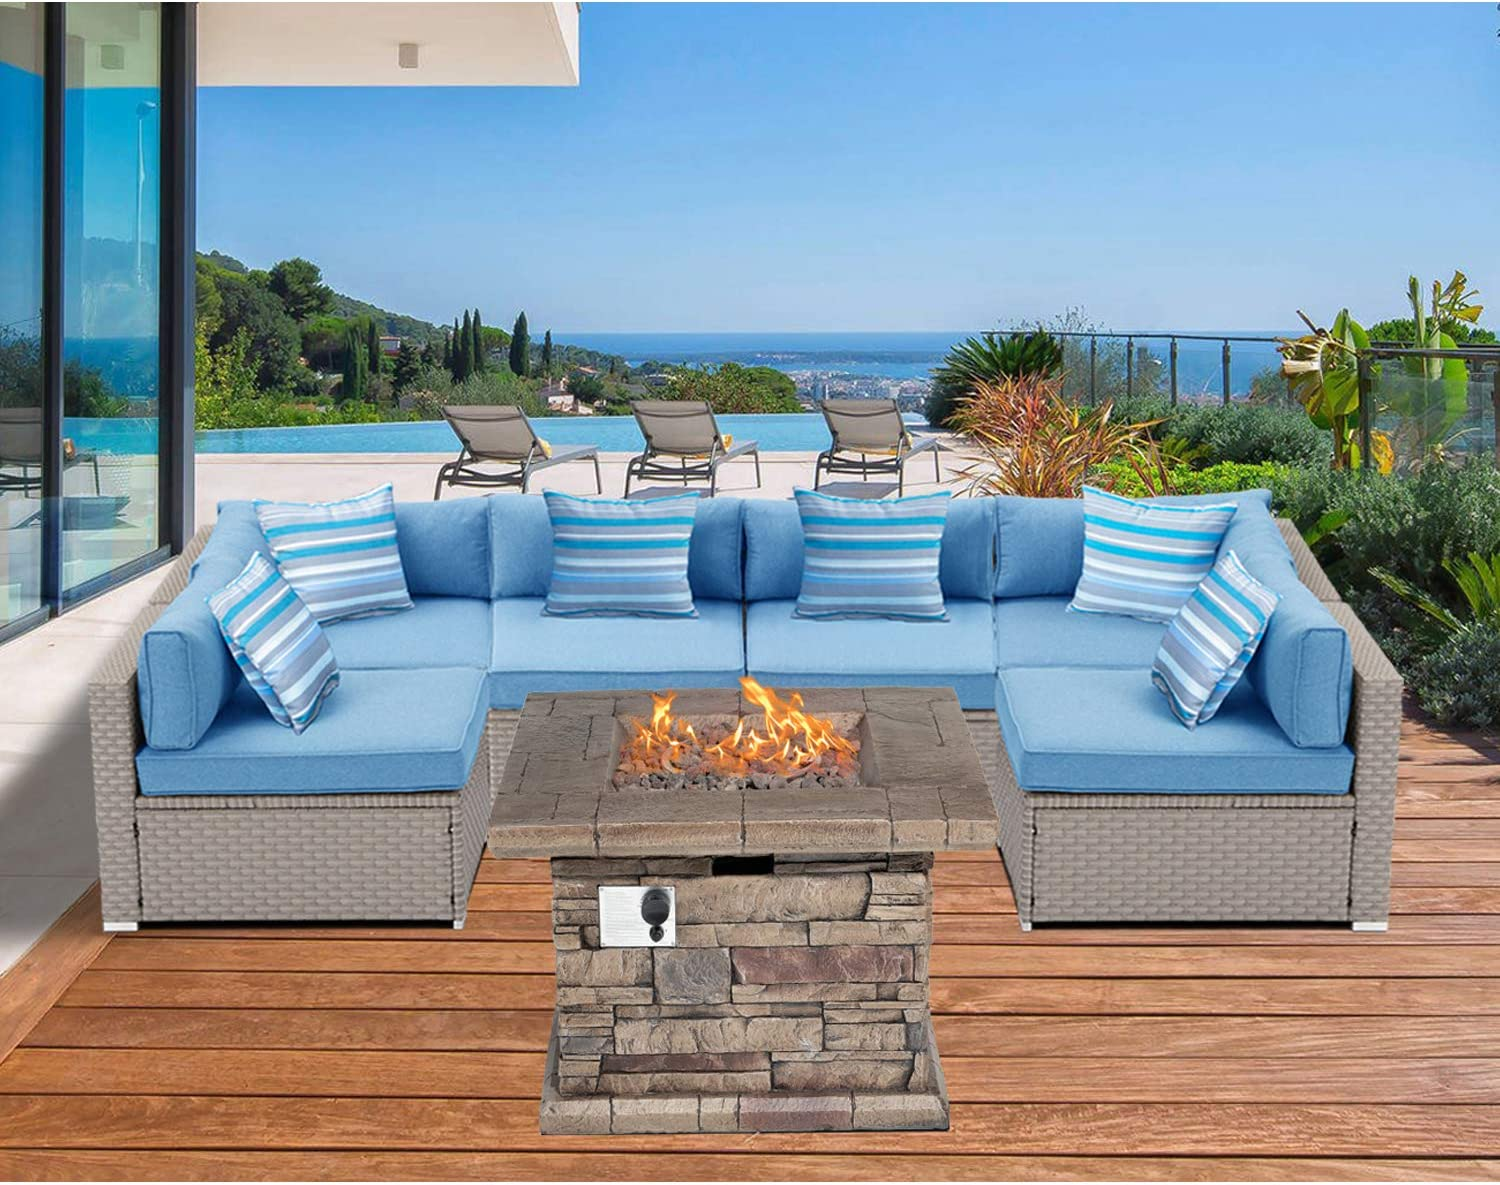 Sunbury Outdoor Sectional 7 Piece Pearl Gray Wicker Sofa Patio Furniture Set W 35 Inch 50 000 Btu Square Stone Crest Fire Pit Table 6 Stripe Pillows Denim Blue Cushions Weatherproof Cover Garden Outdoor